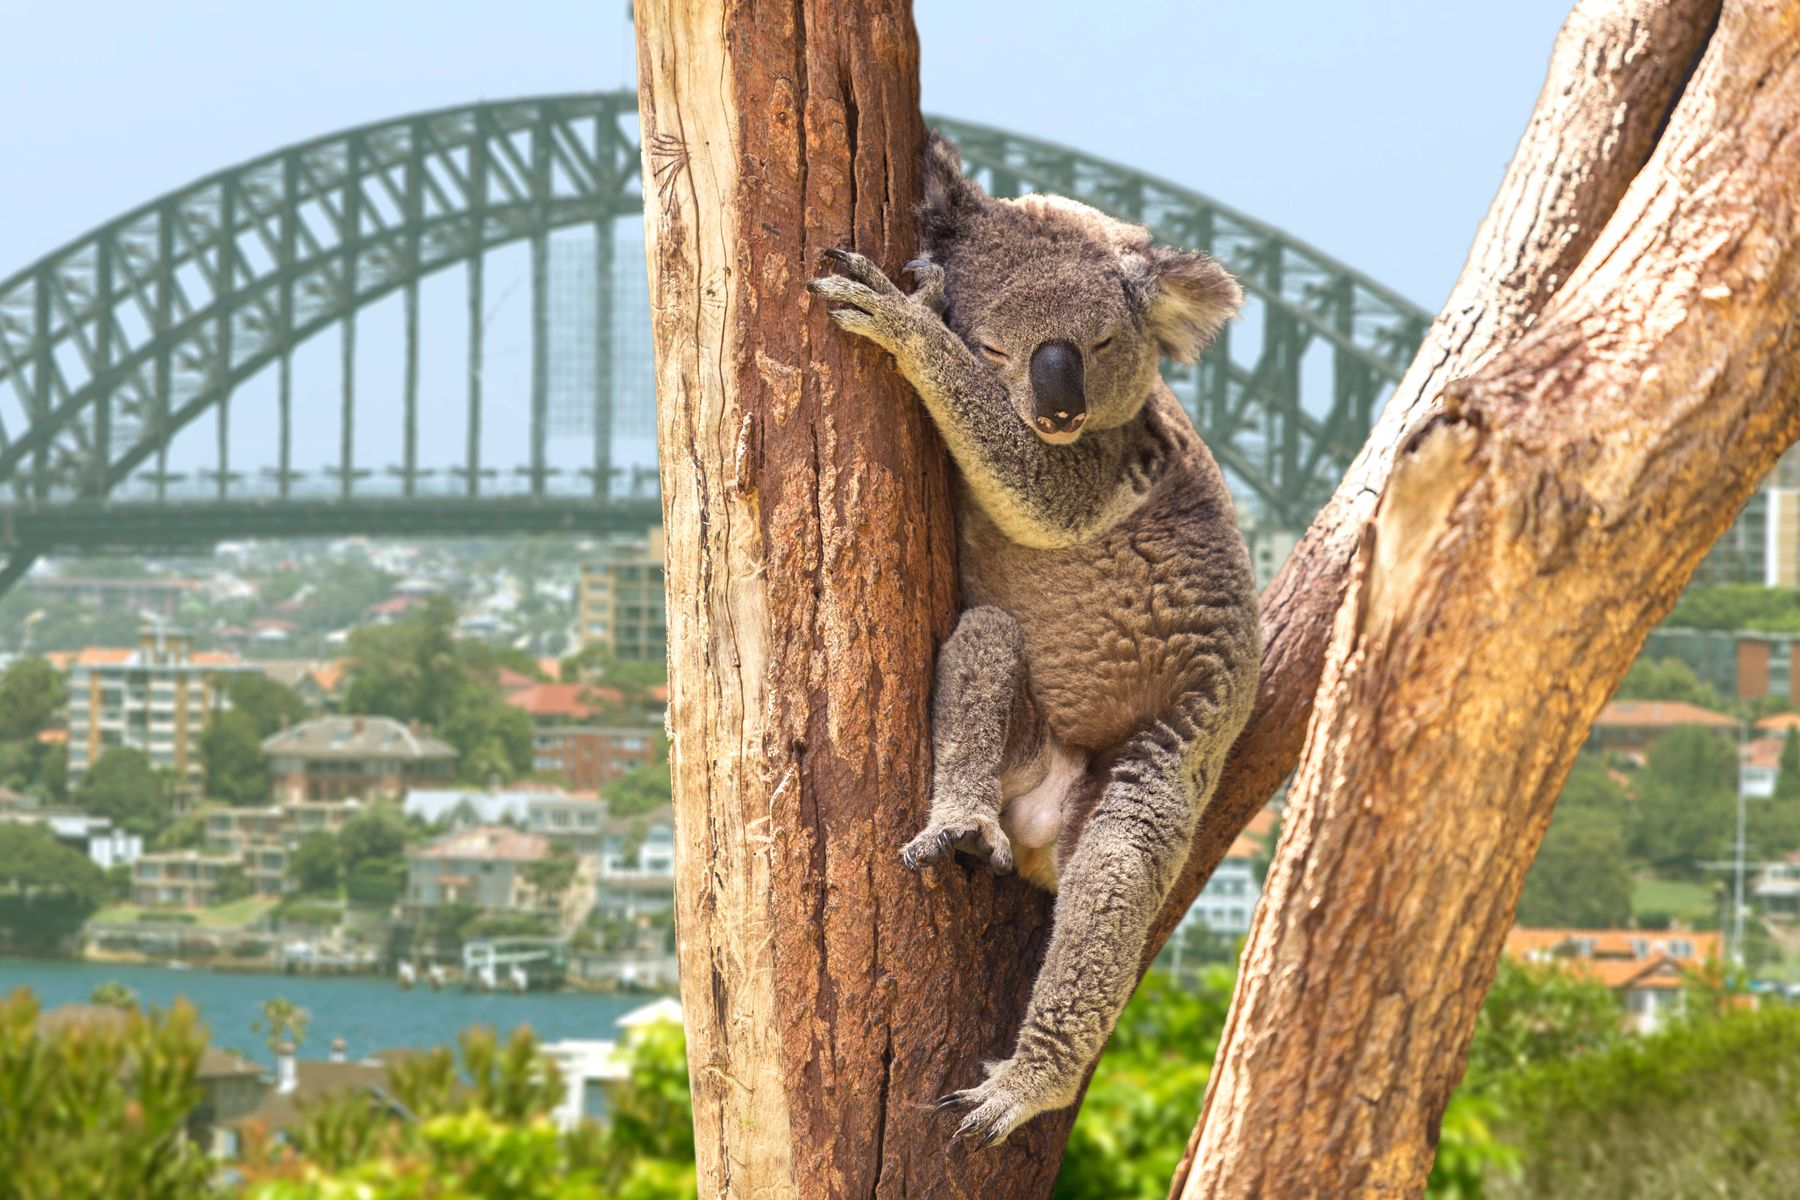 Koalas are found in most zoos in Australia